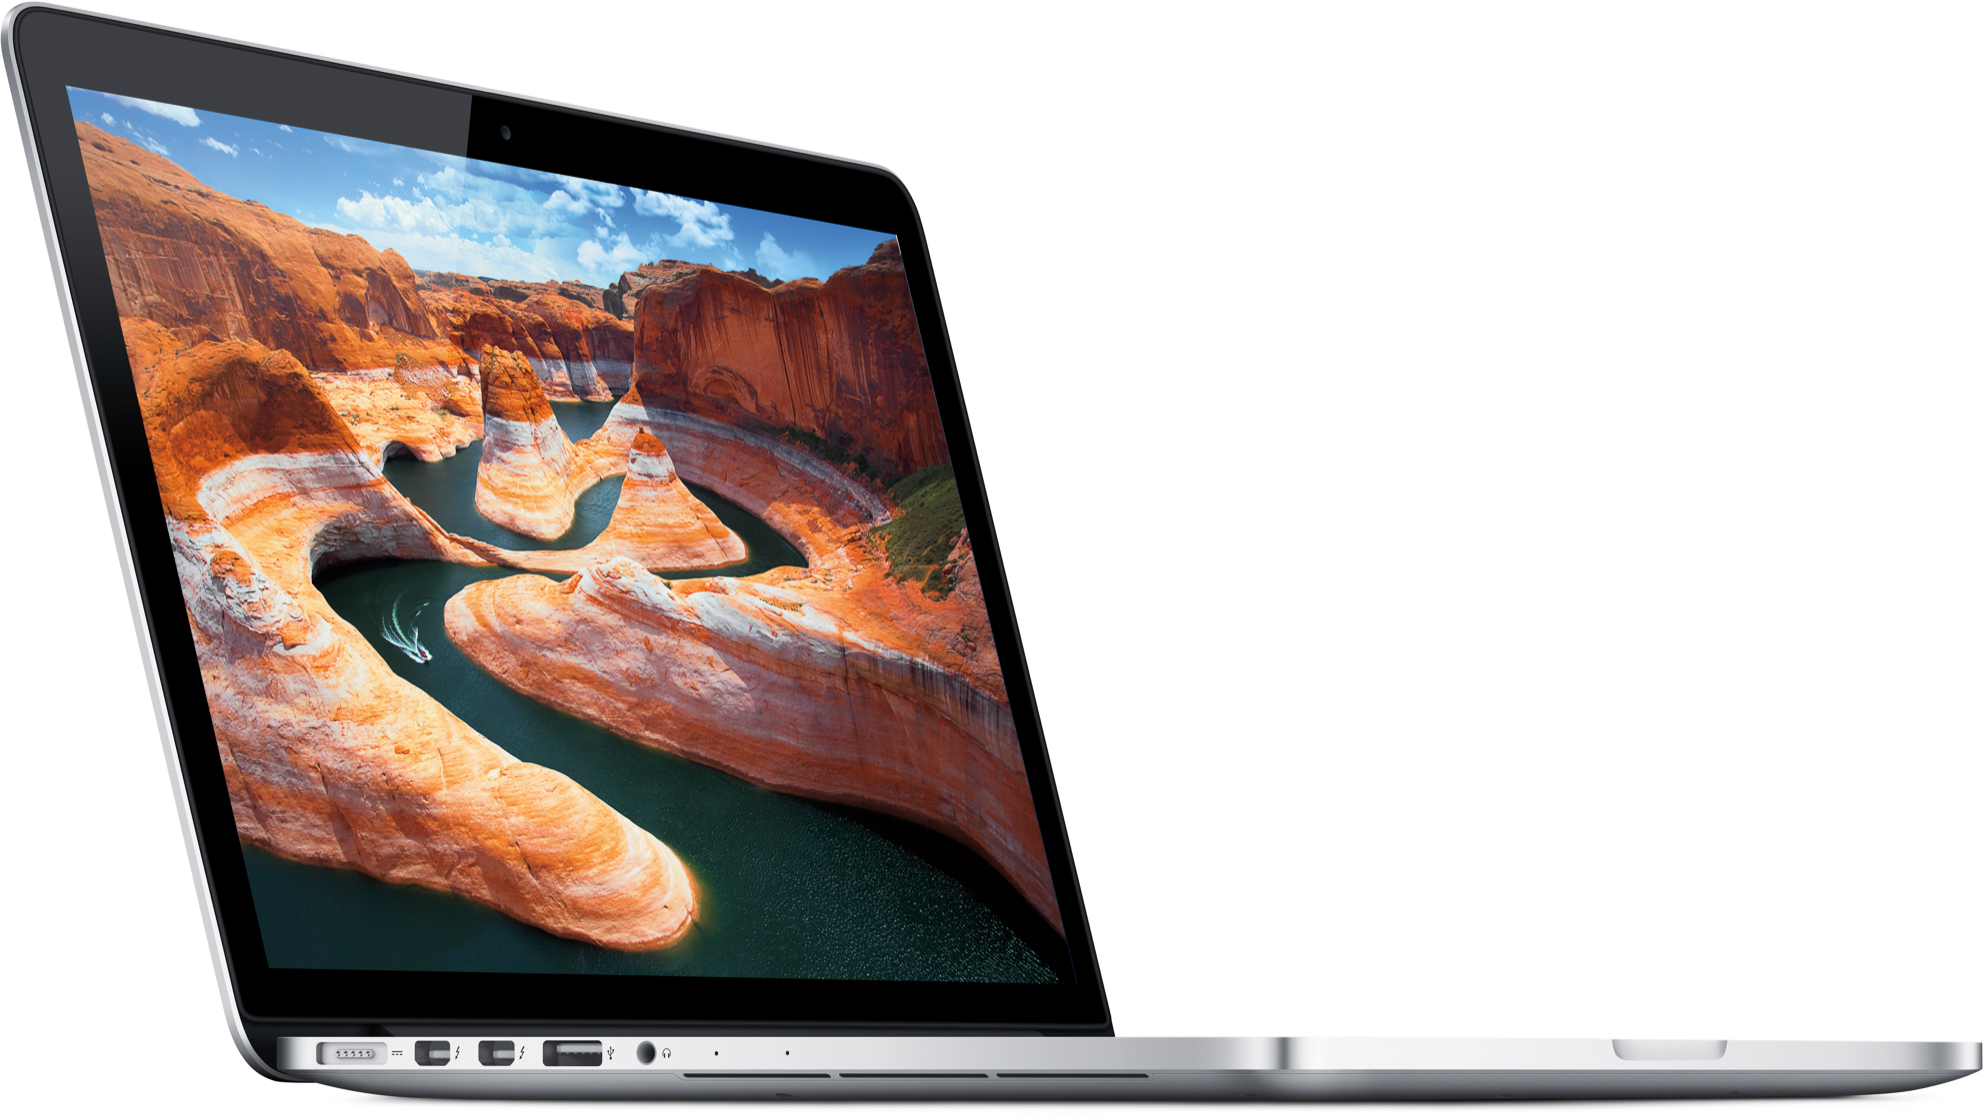 MacBook Pro de 13 polegadas com tela Retina de frente e inclinado